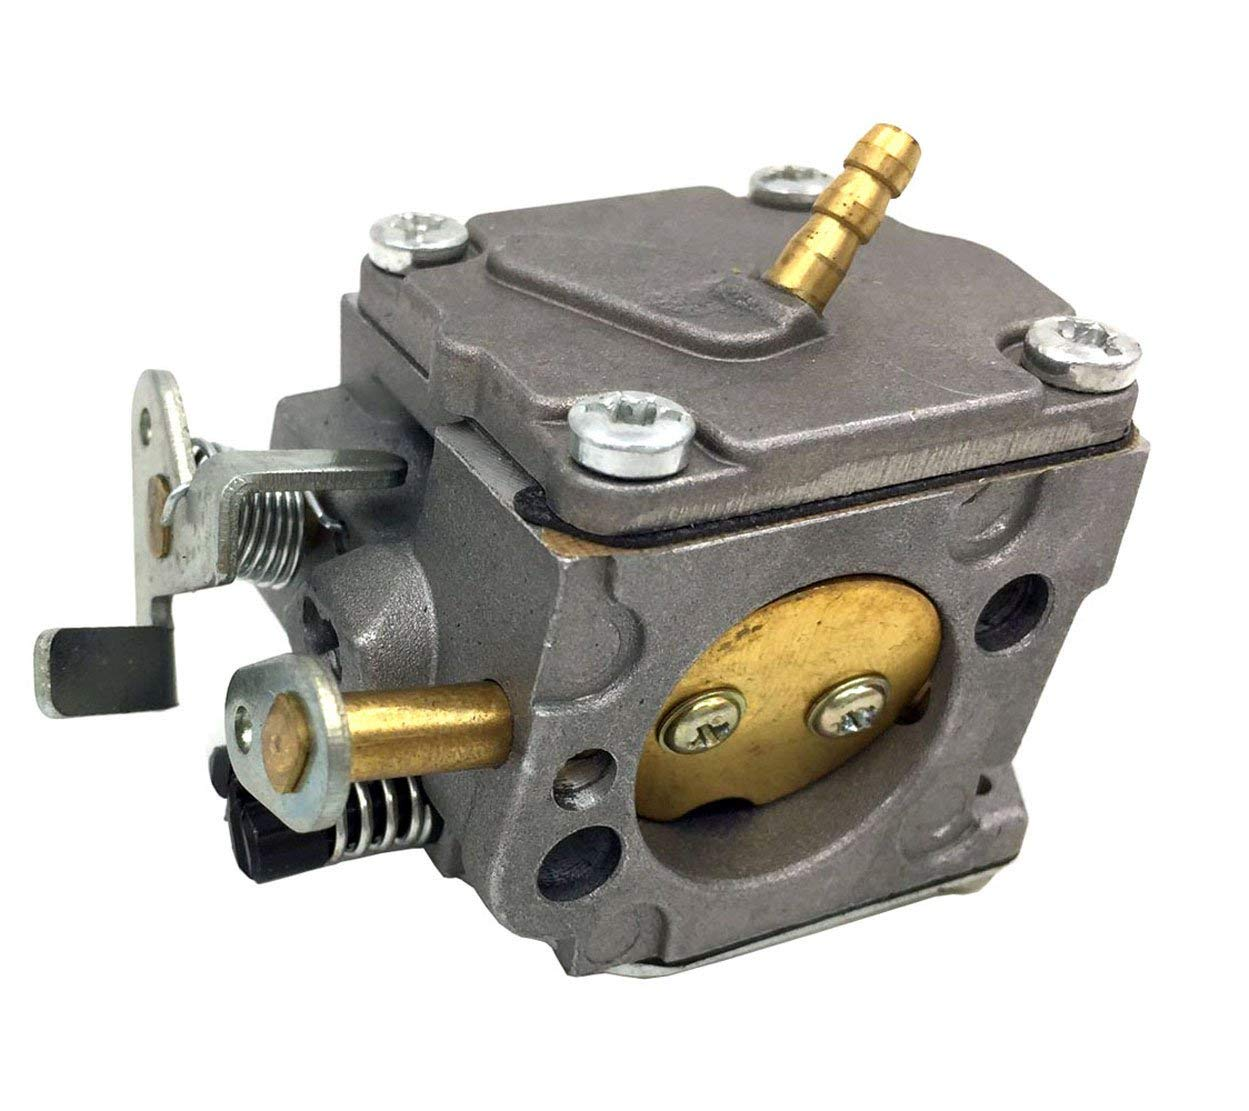 New Carburetor Carb Fits STIHL 041 041AV 041 FARM BOSS GAS Chainsaw Model  Motorcycle Replacement Accessories Parts Free Shipping-in Carburetor from  ...